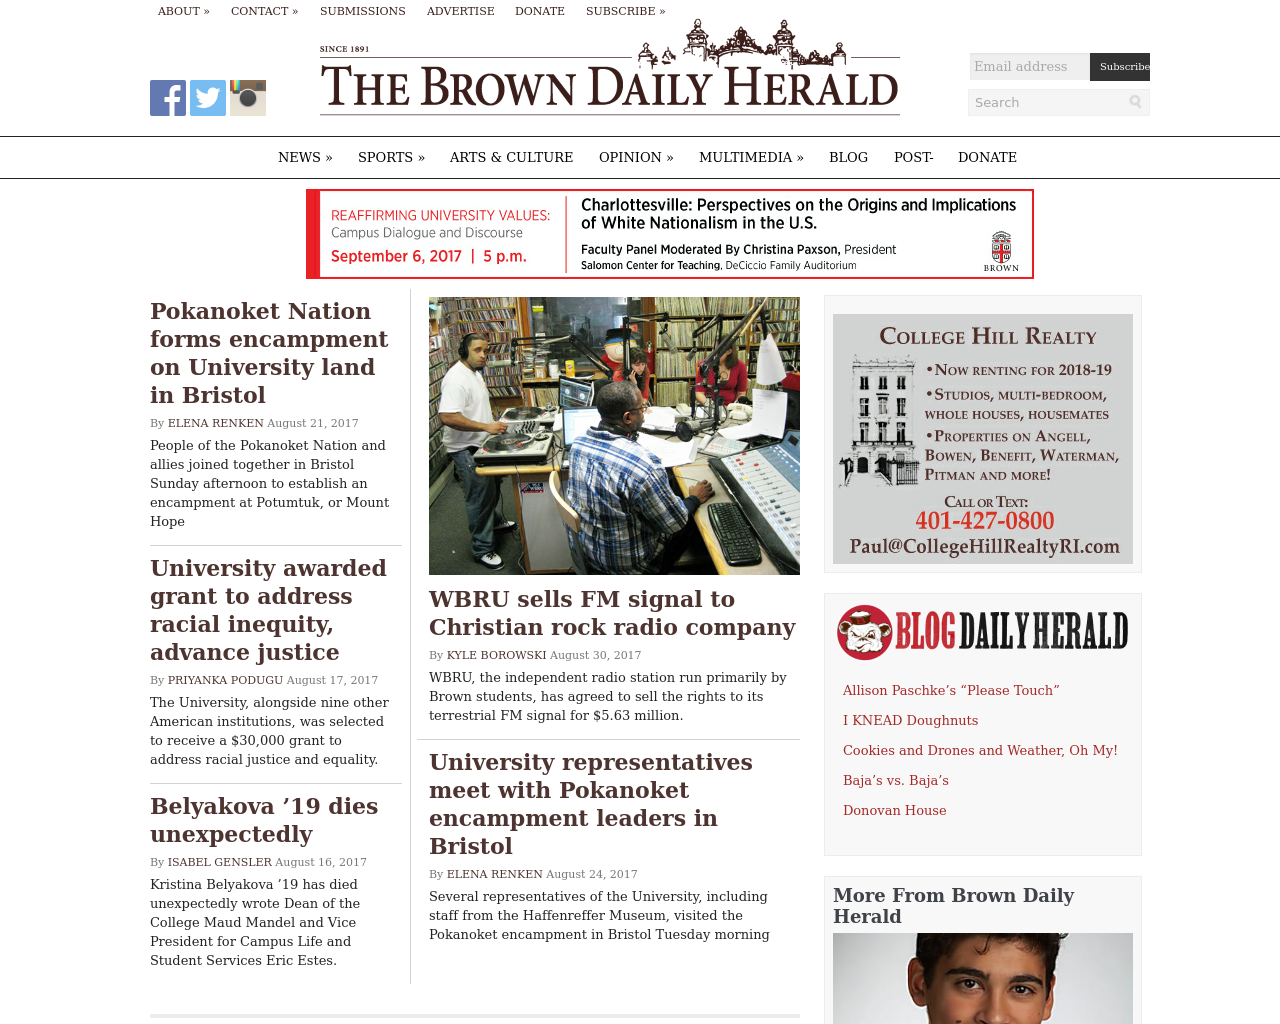 The-Brown-Daily-Herald-Advertising-Reviews-Pricing